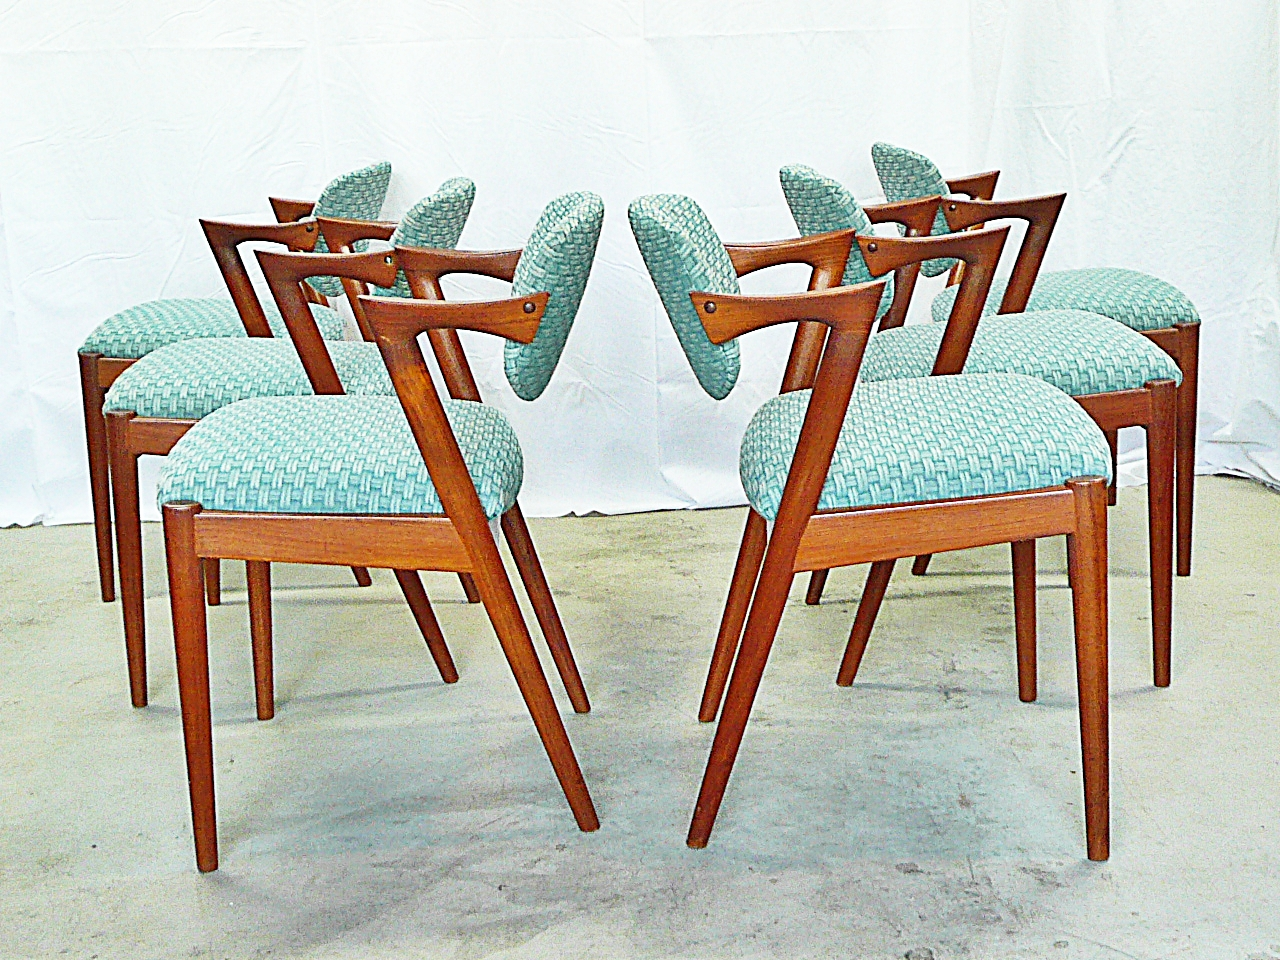 wkf  co – midcentury chairs  who knows fashion - midcenturymoderndiningchairsmodernmidcenturydanish